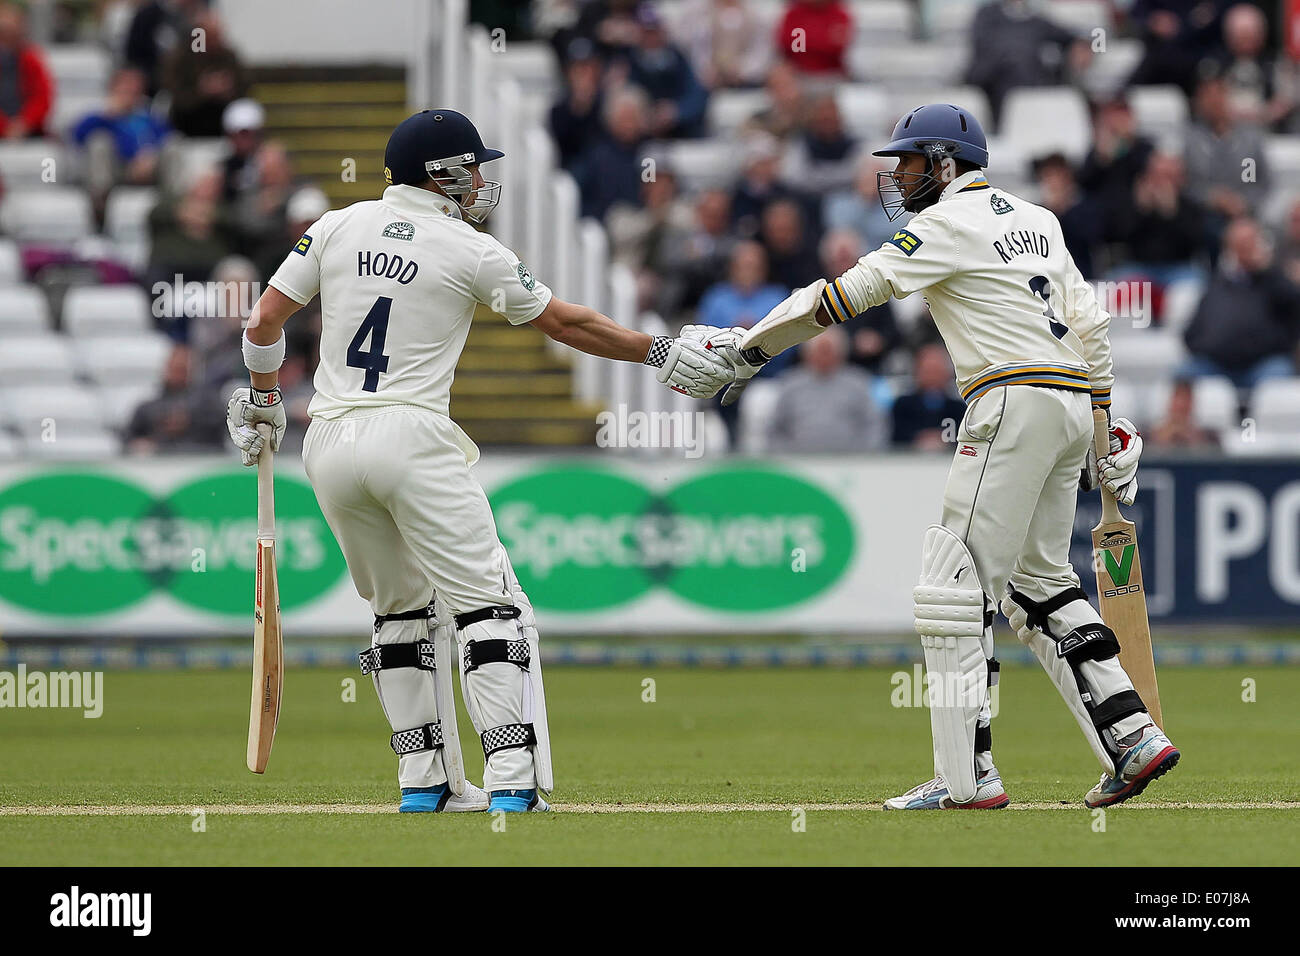 Chester Le Street, UK. 5th May 2014. Yorkshire's Andrew Hodd congratulates team mate Adil Rashid on reaching 50 on Day two of the LV County Championship Division One game between Durham CCC & Yorkshire CCC at Emirates Durham ICG in Chester Le Street on Monday May 5th 2014. Credit:  Mark Fletcher/Alamy Live News - Stock Image